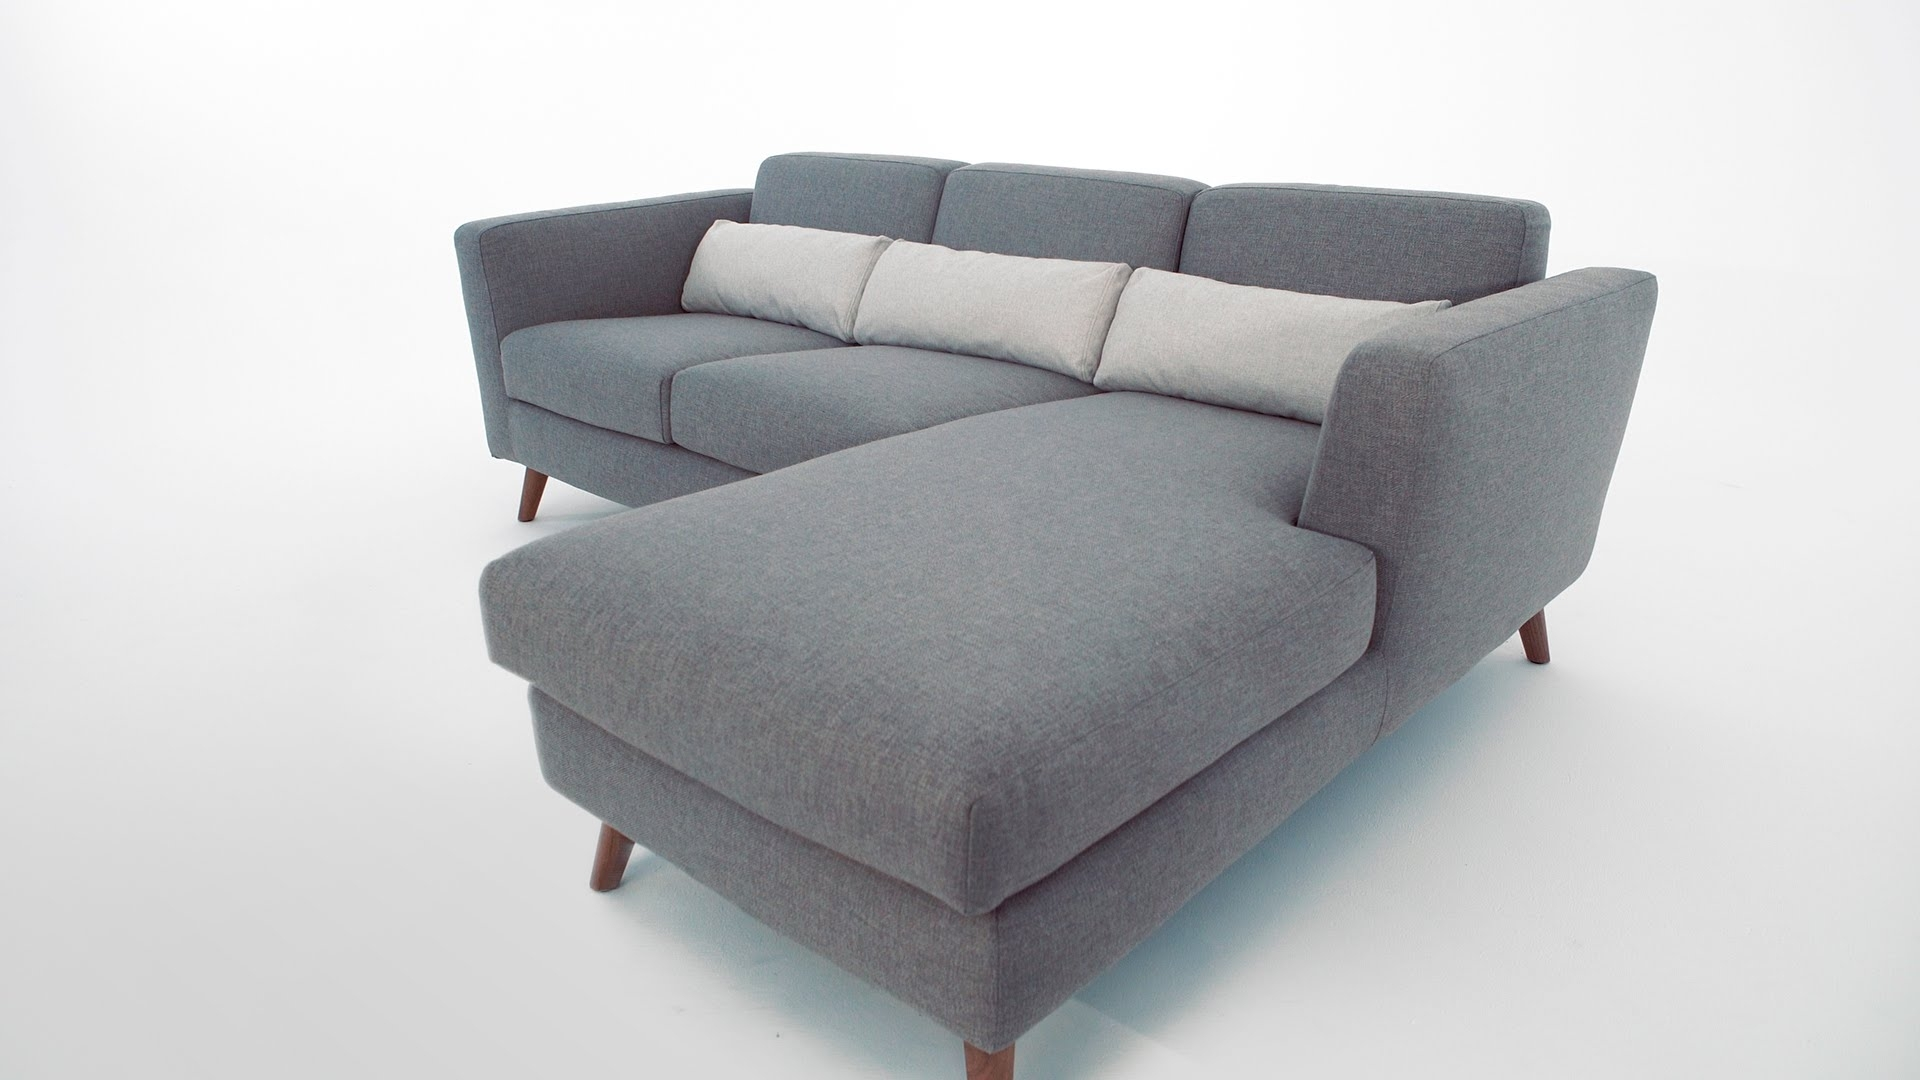 The Taylor Sectional Sofa - Structube - Youtube in Structube Sectional Sofas (Image 9 of 10)